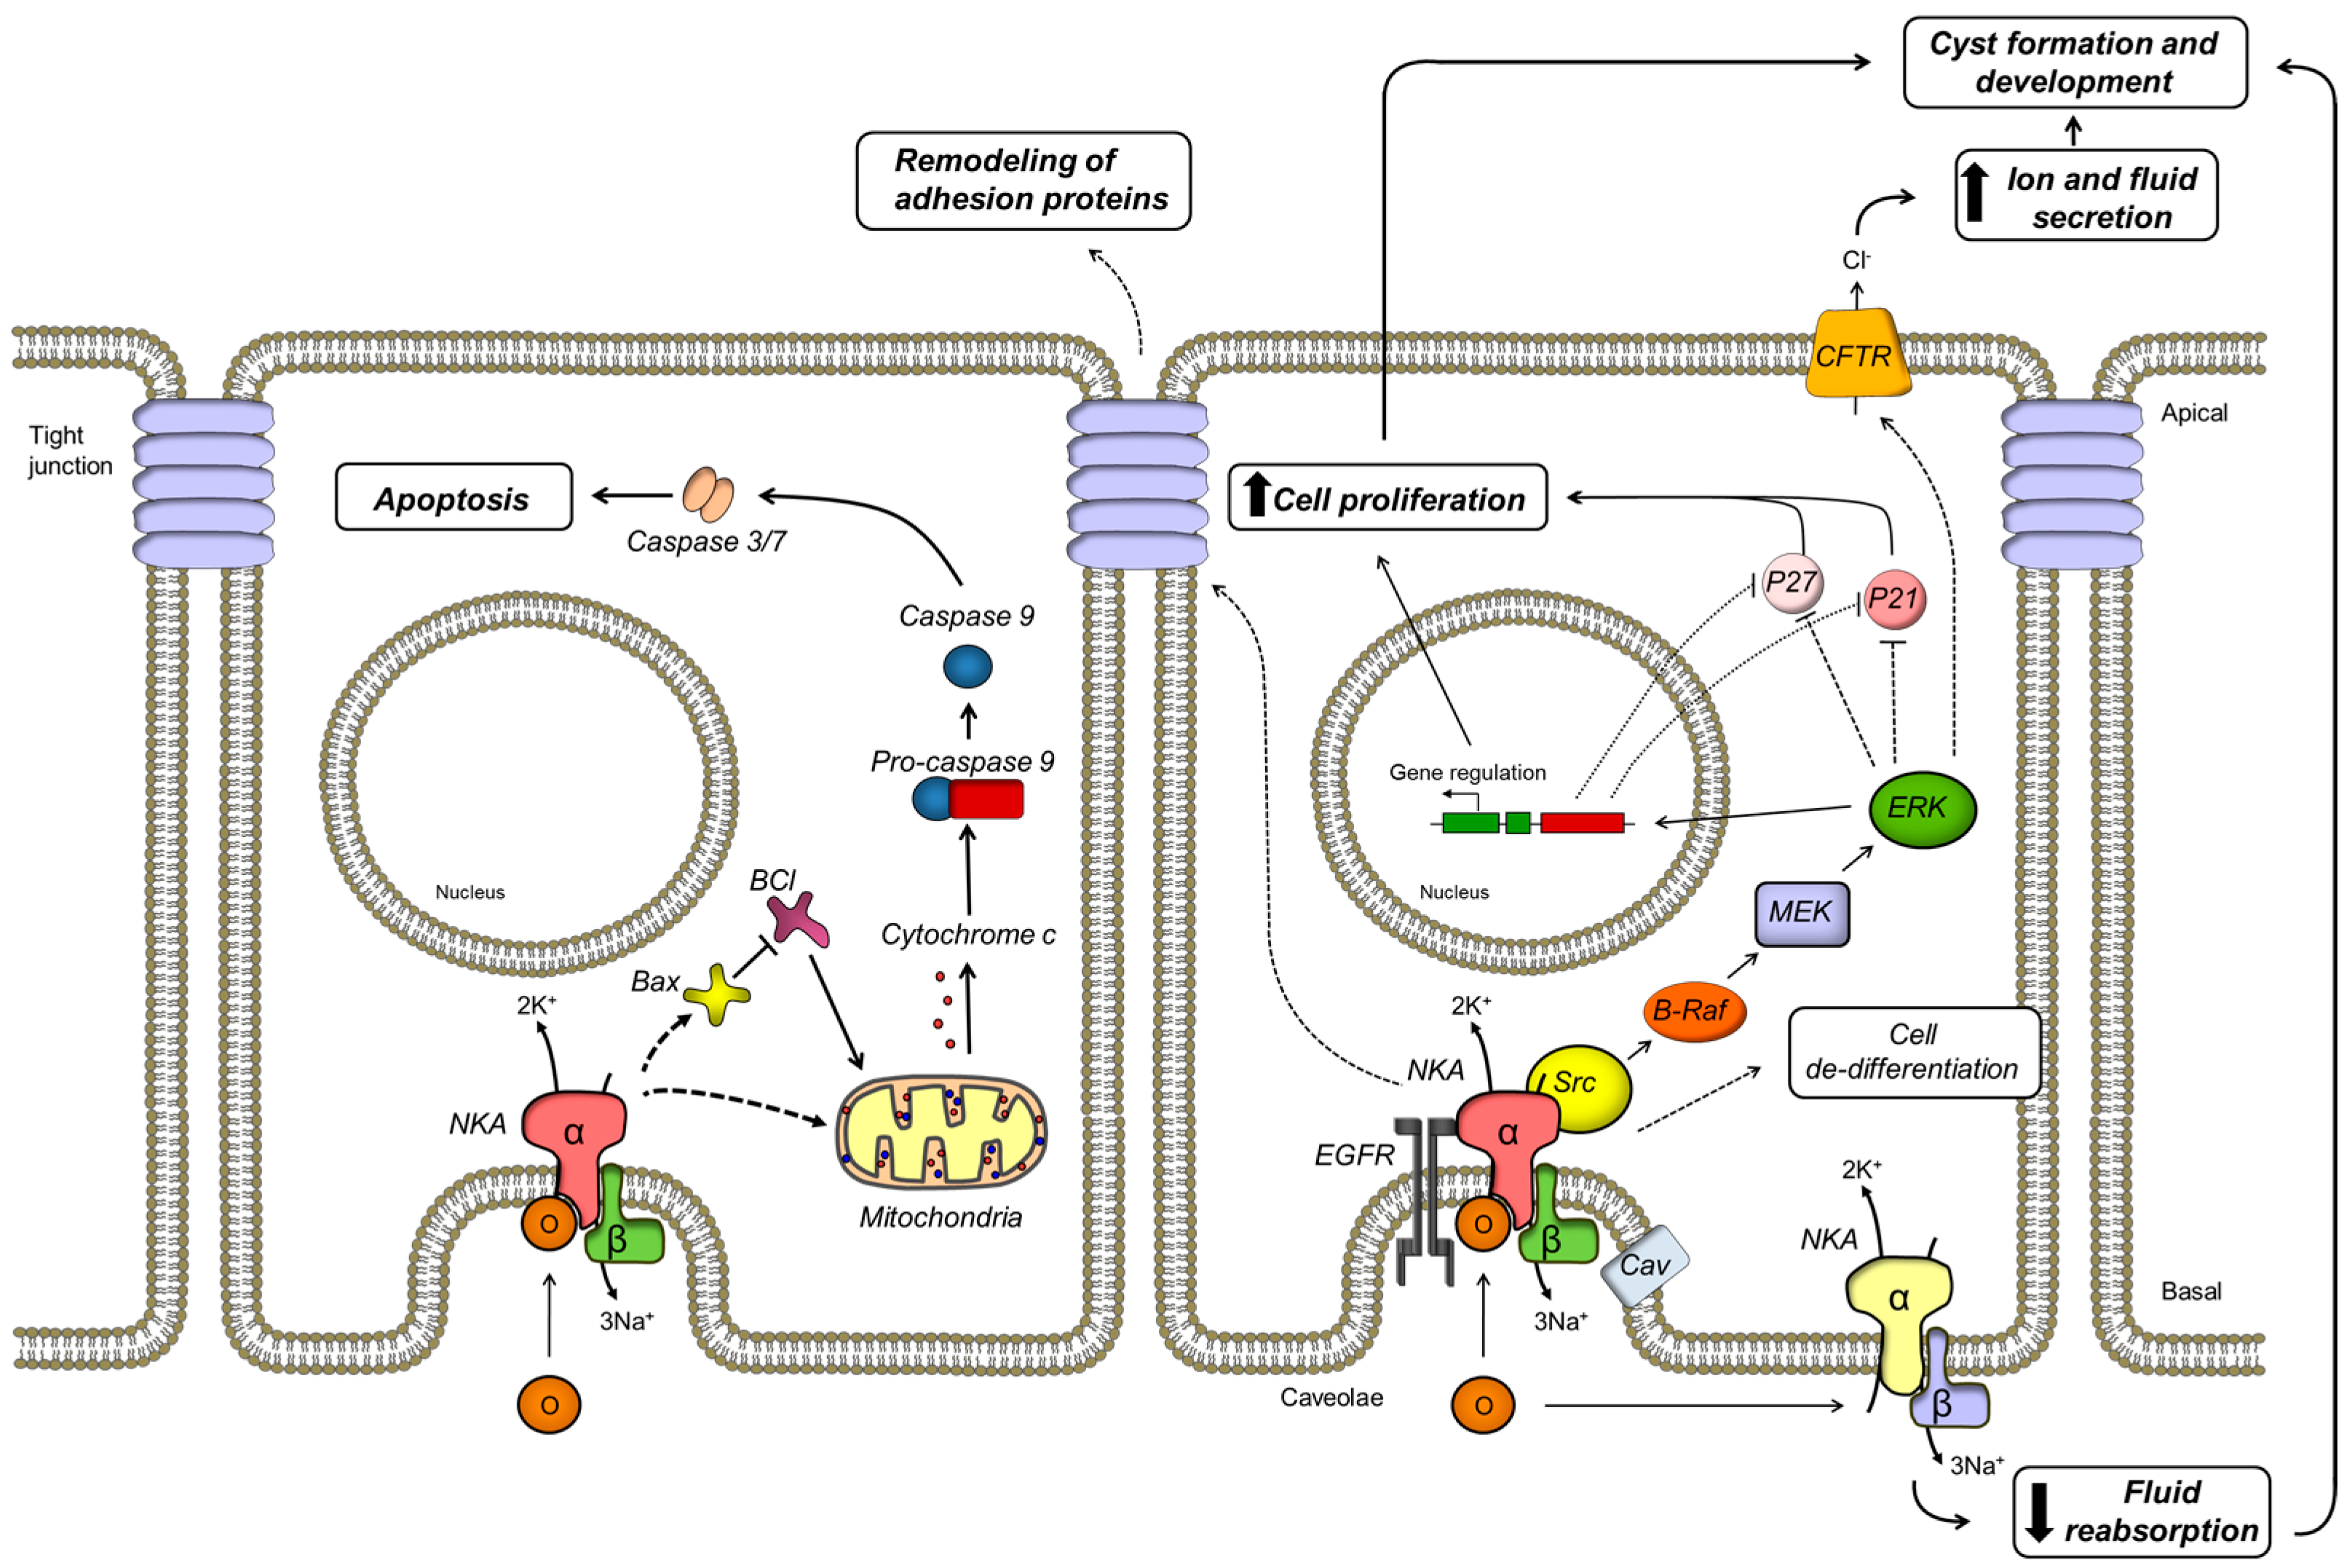 mechanism of disease genetics x clicics essay Neurological channelopathies: new insights into disease mechanisms and ion channel function  genes underlie the genetics of such neurological diseases identifying .